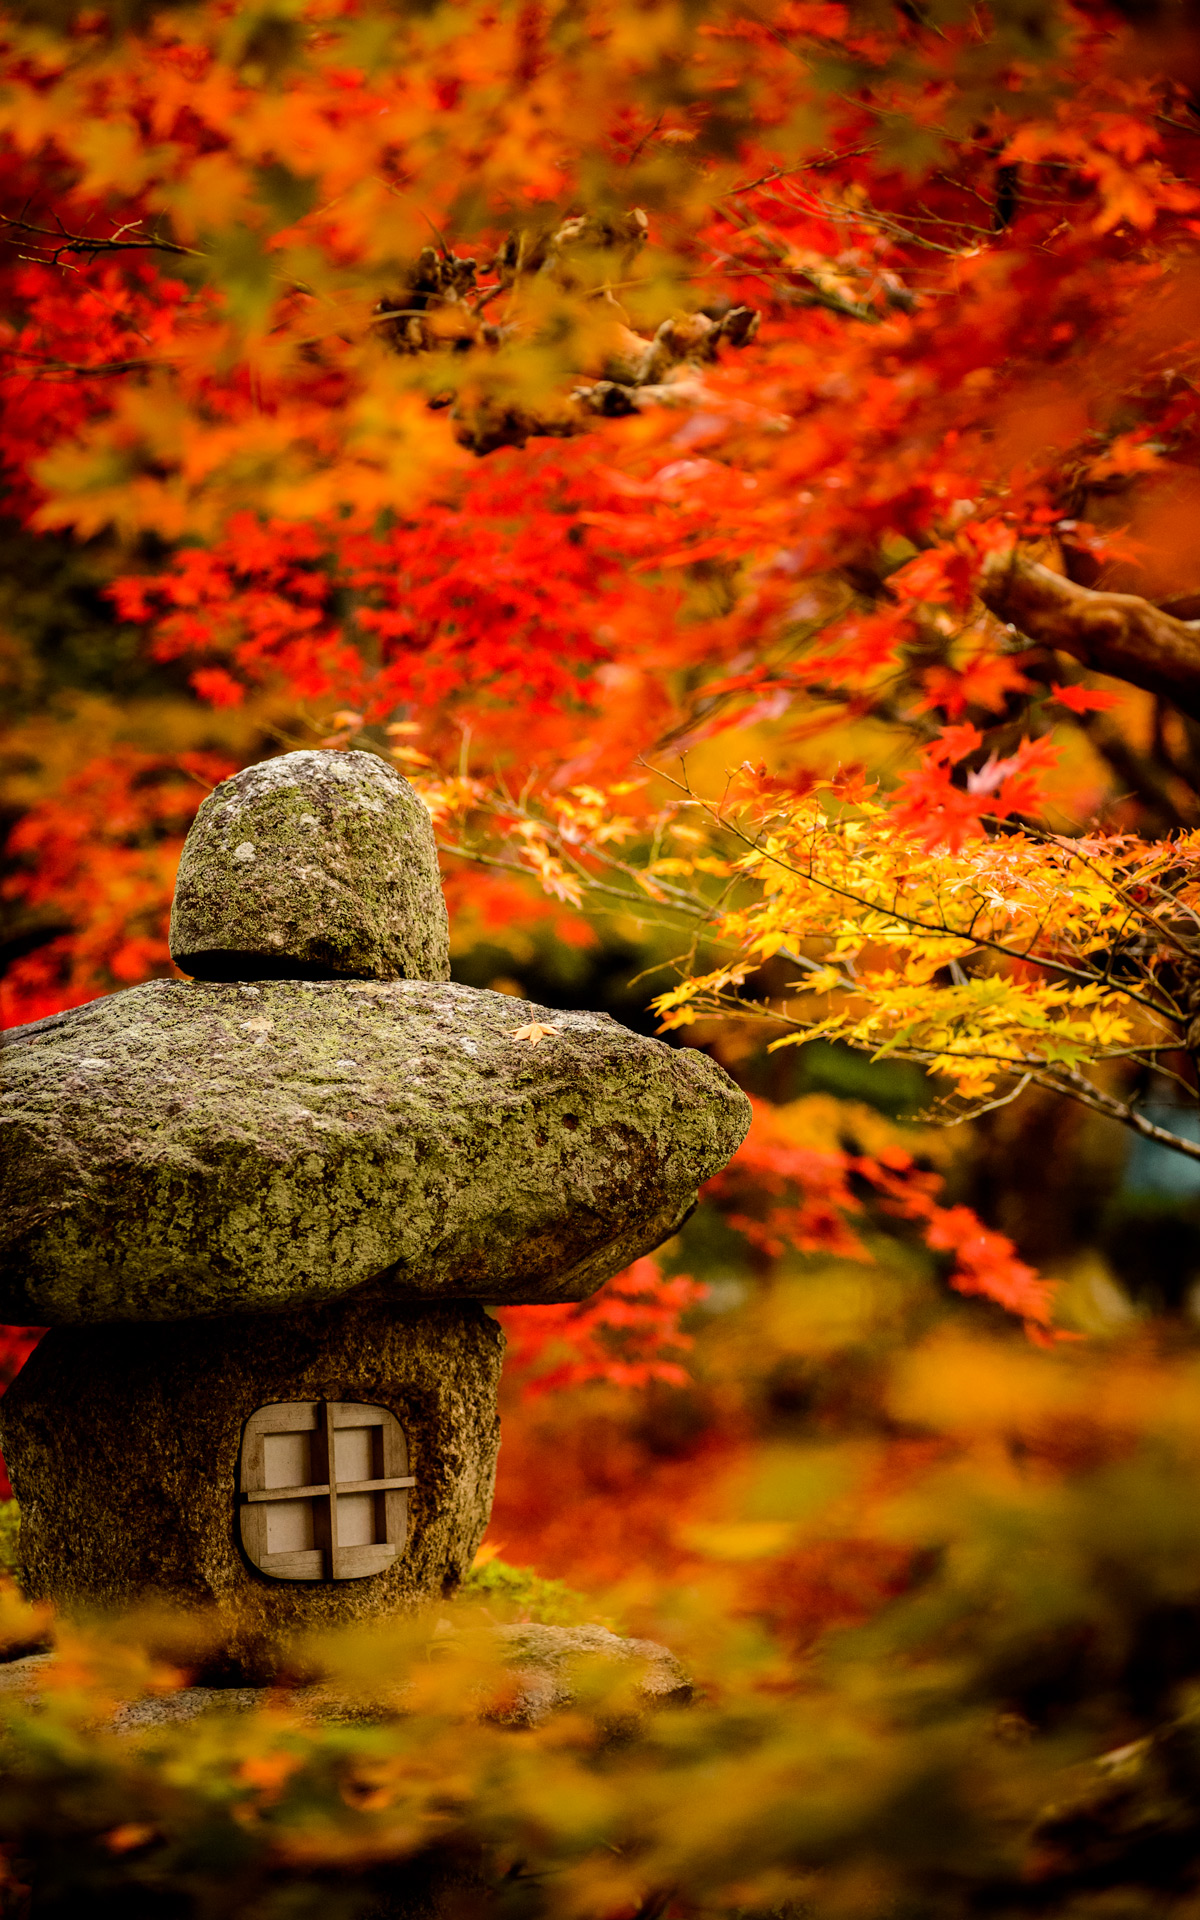 Free Computer Wallpaper Fall Leaves Jeffrey Friedl S Blog 187 More Japanese Garden Desktop